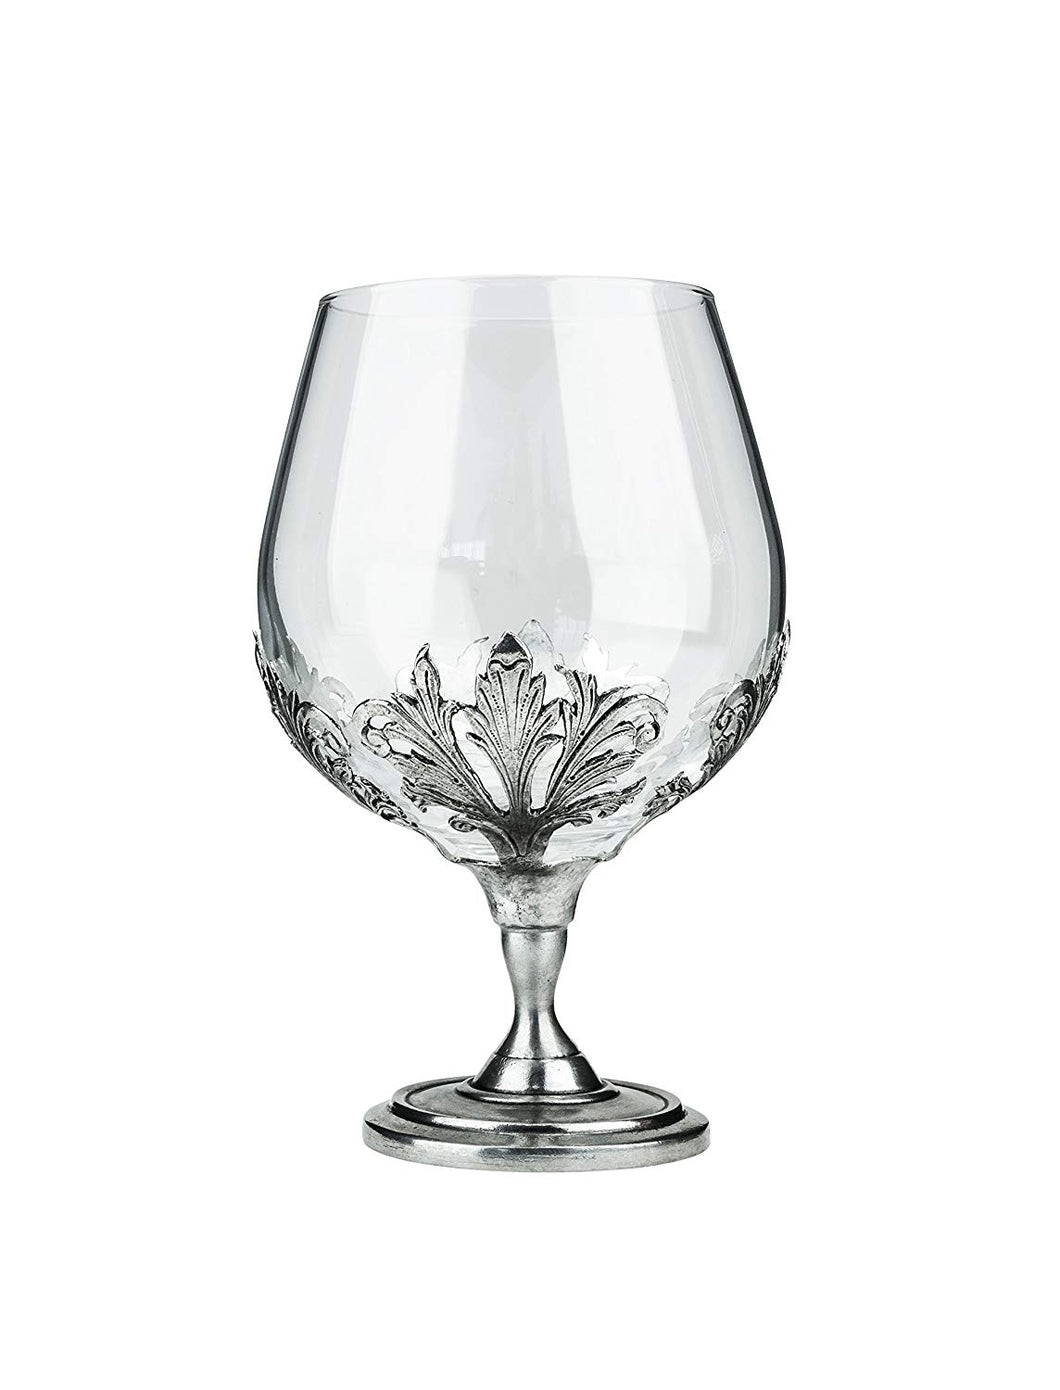 Denizli Medieval Cognac Snifter Glass, Gothic Style Crystal Glass, Metal Pattern